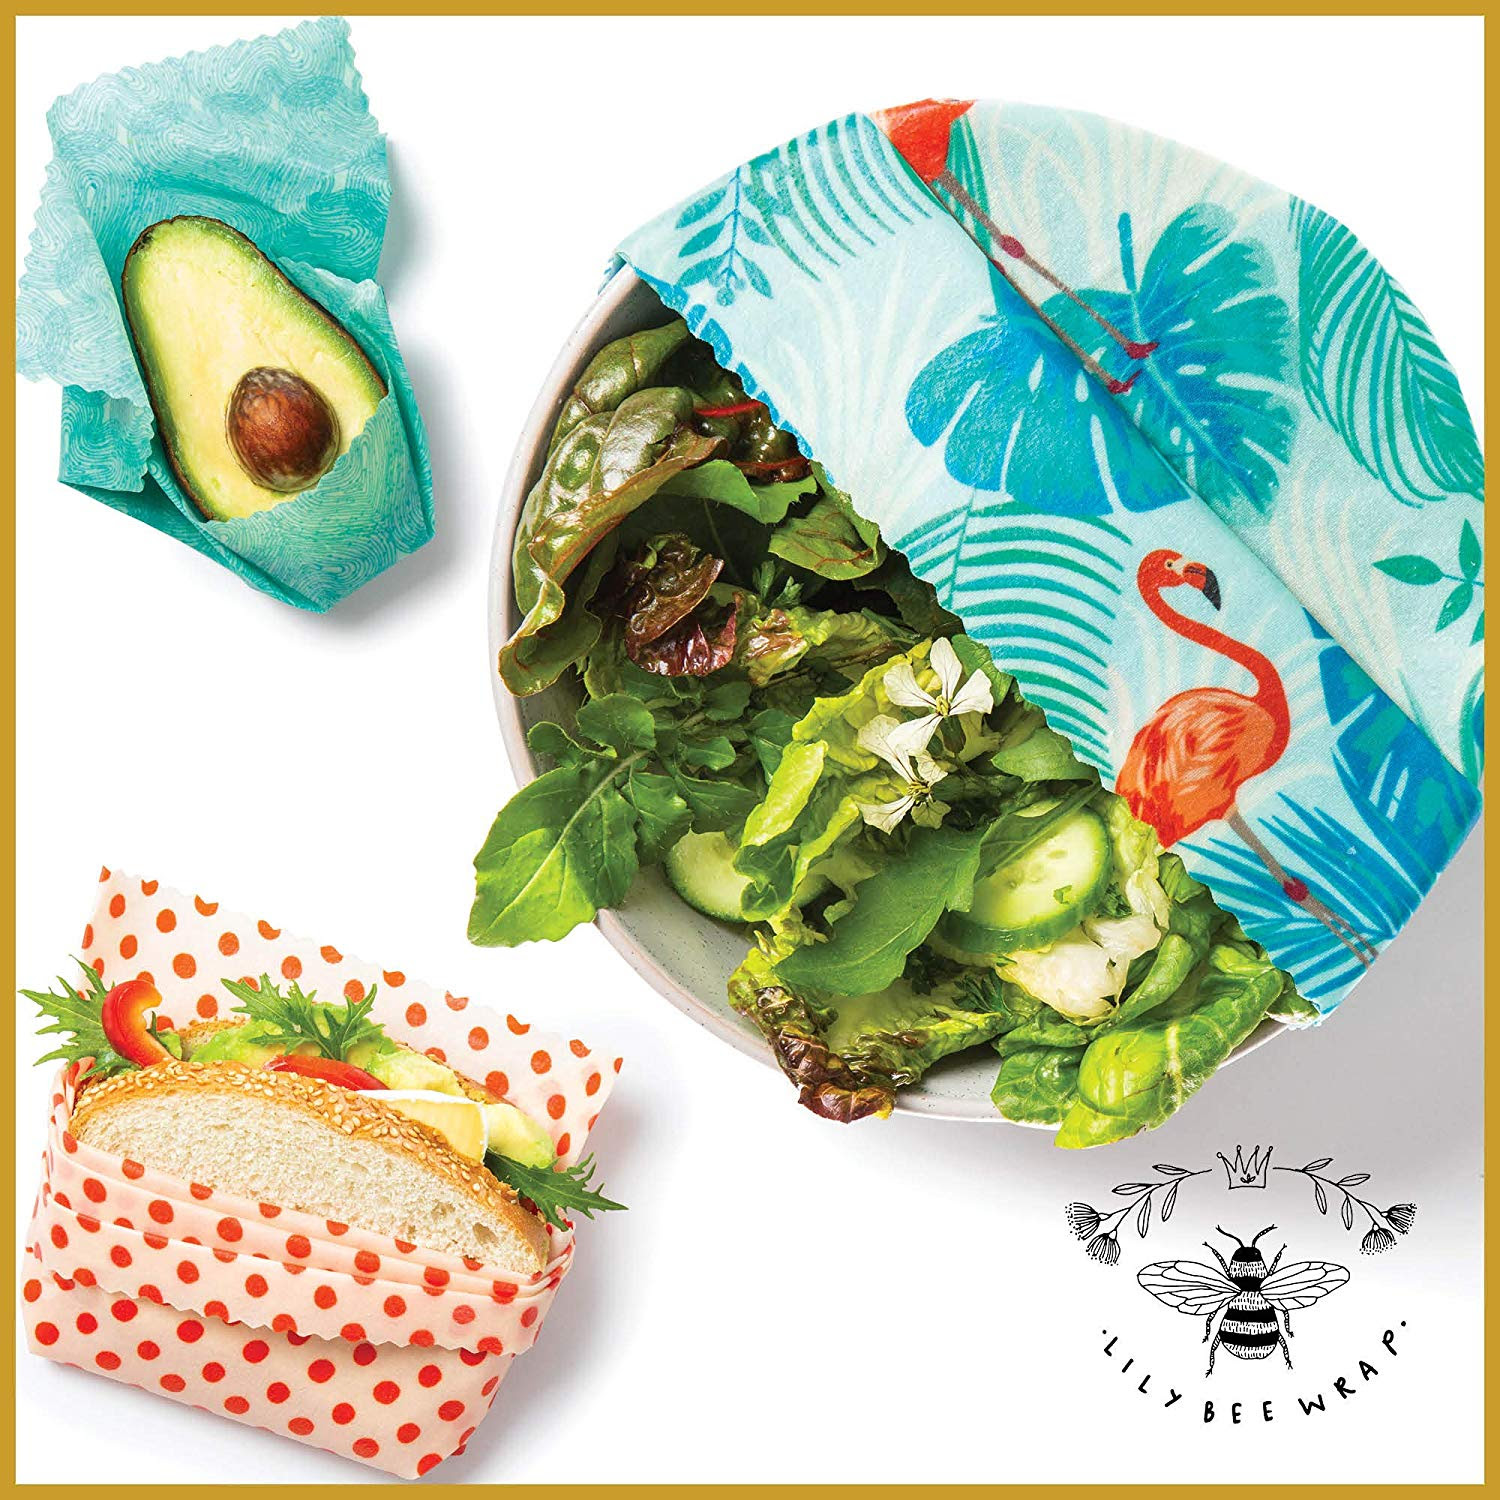 LilyBee Beeswax Wrap Reusable Food Wraps